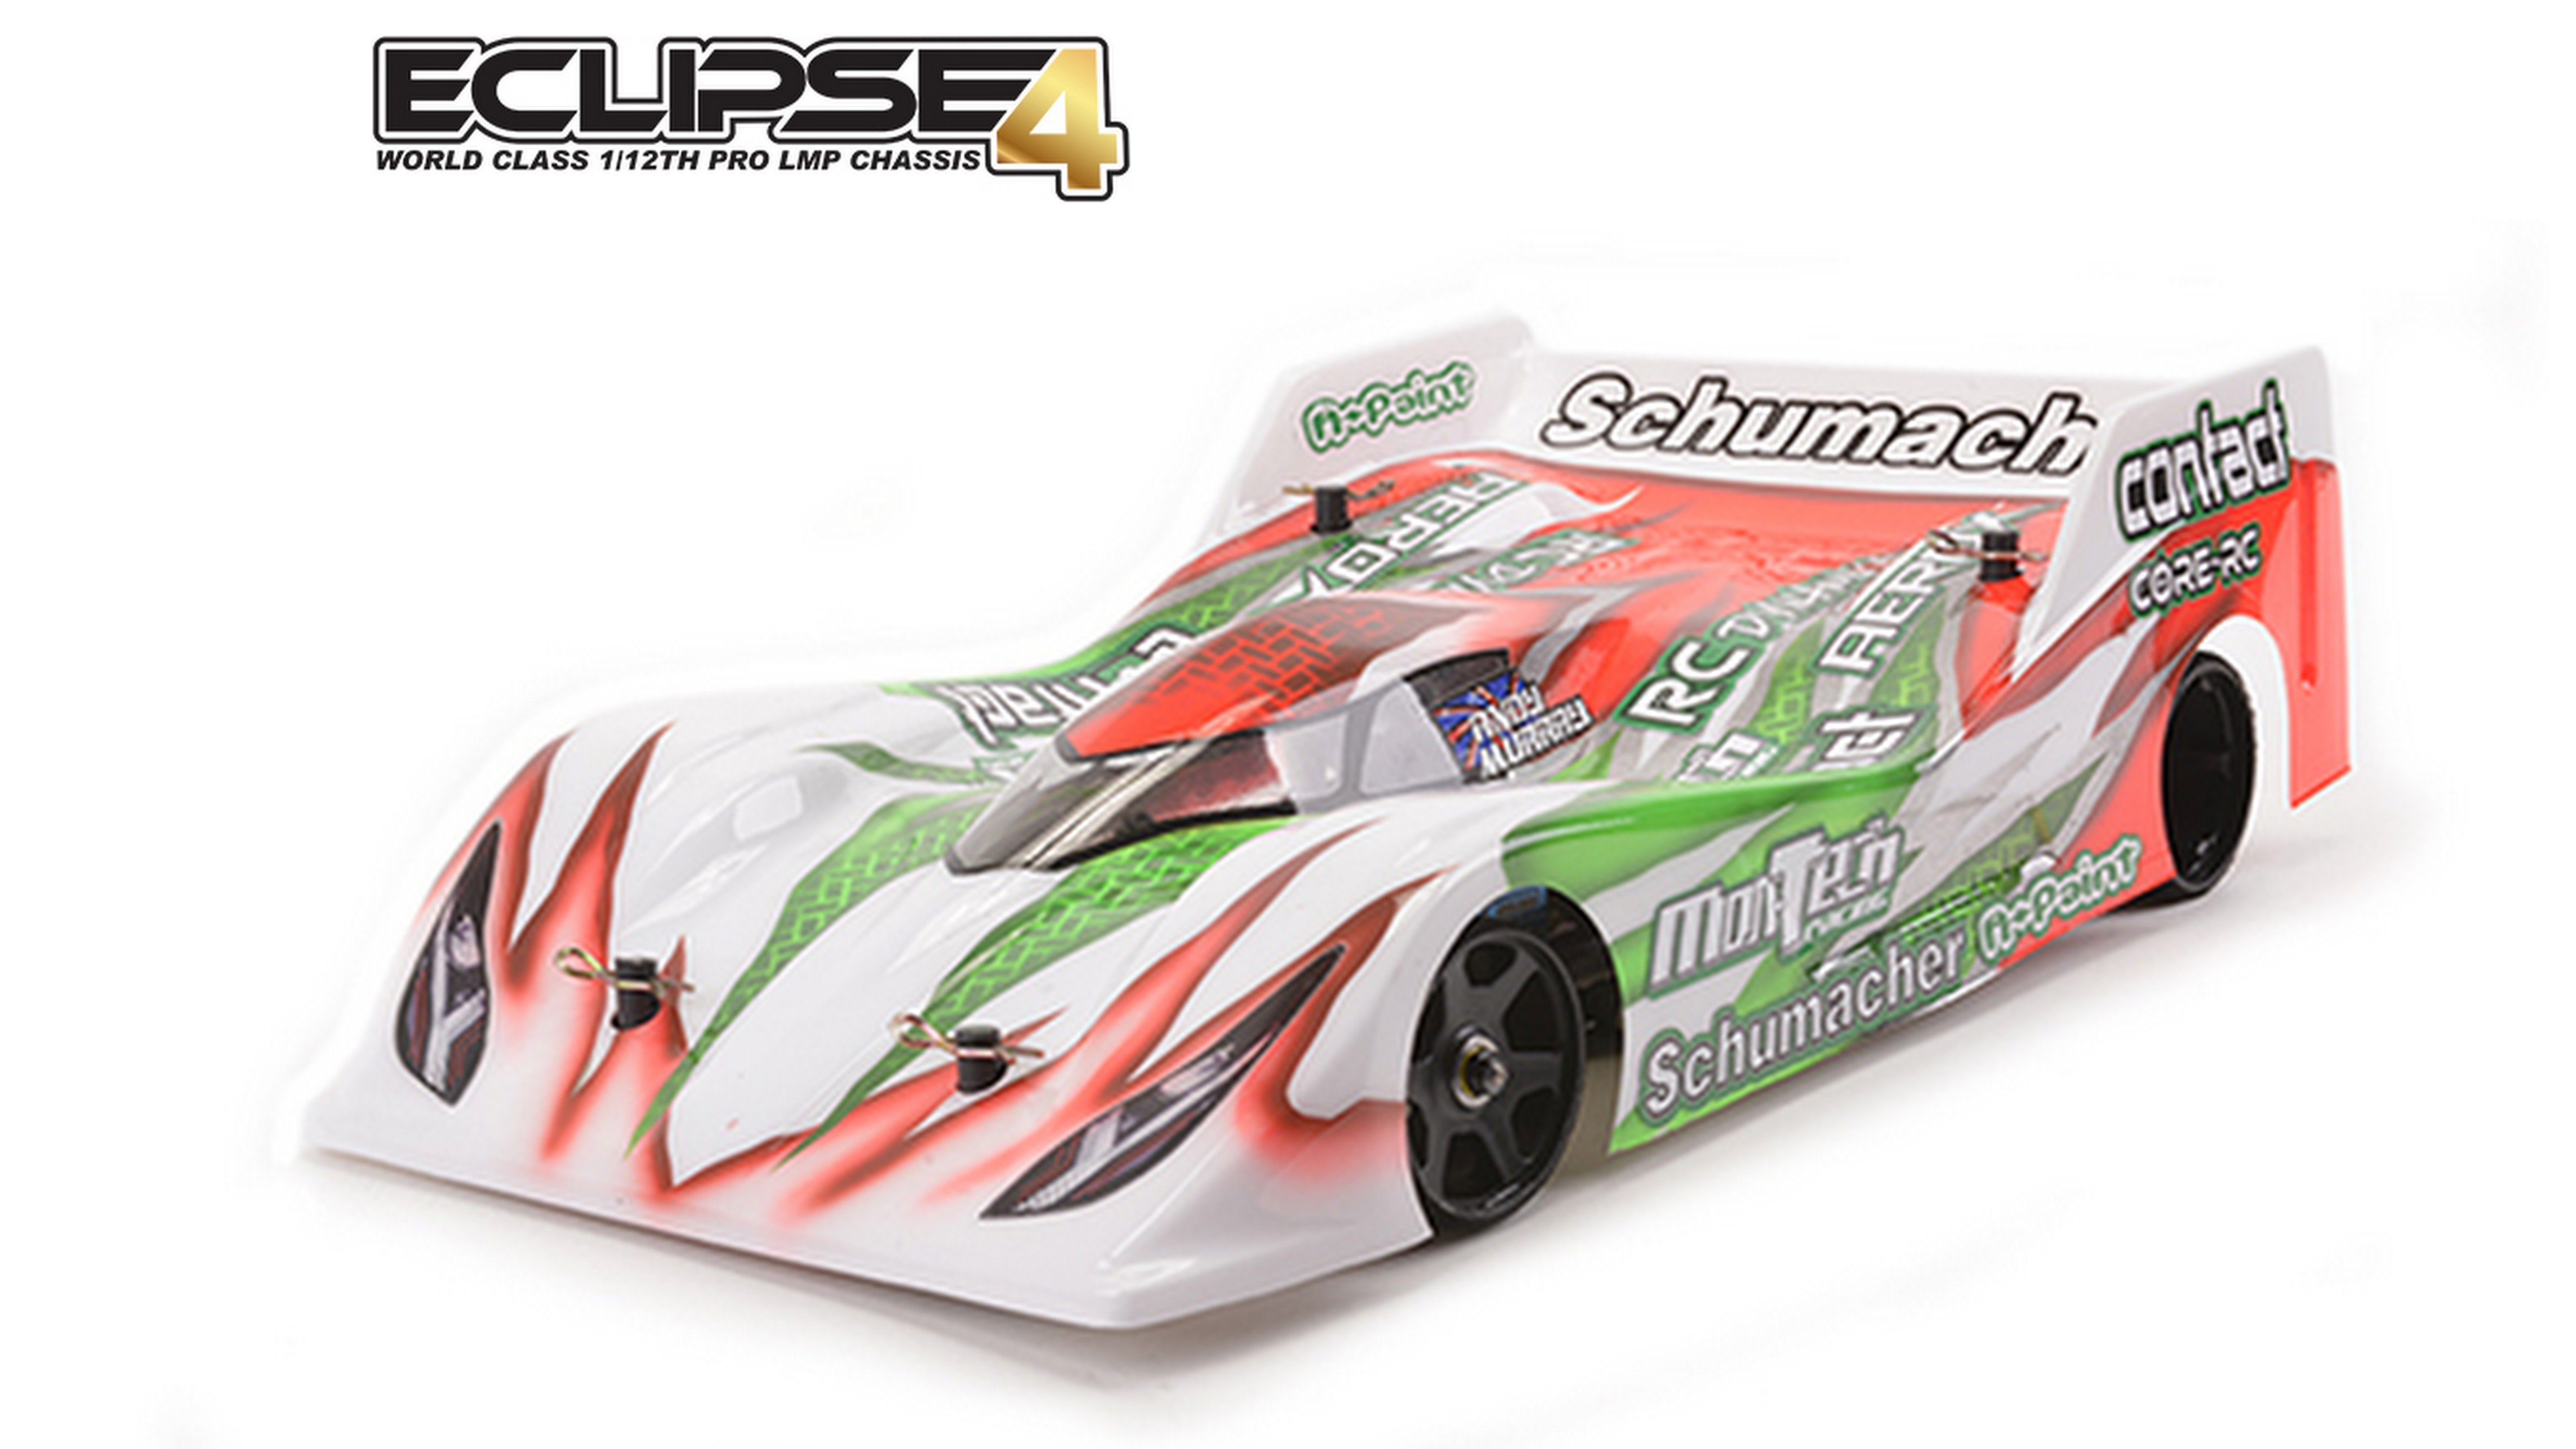 Schumacher K192 - Eclipse 4 - 1/12th Circuit - Kit